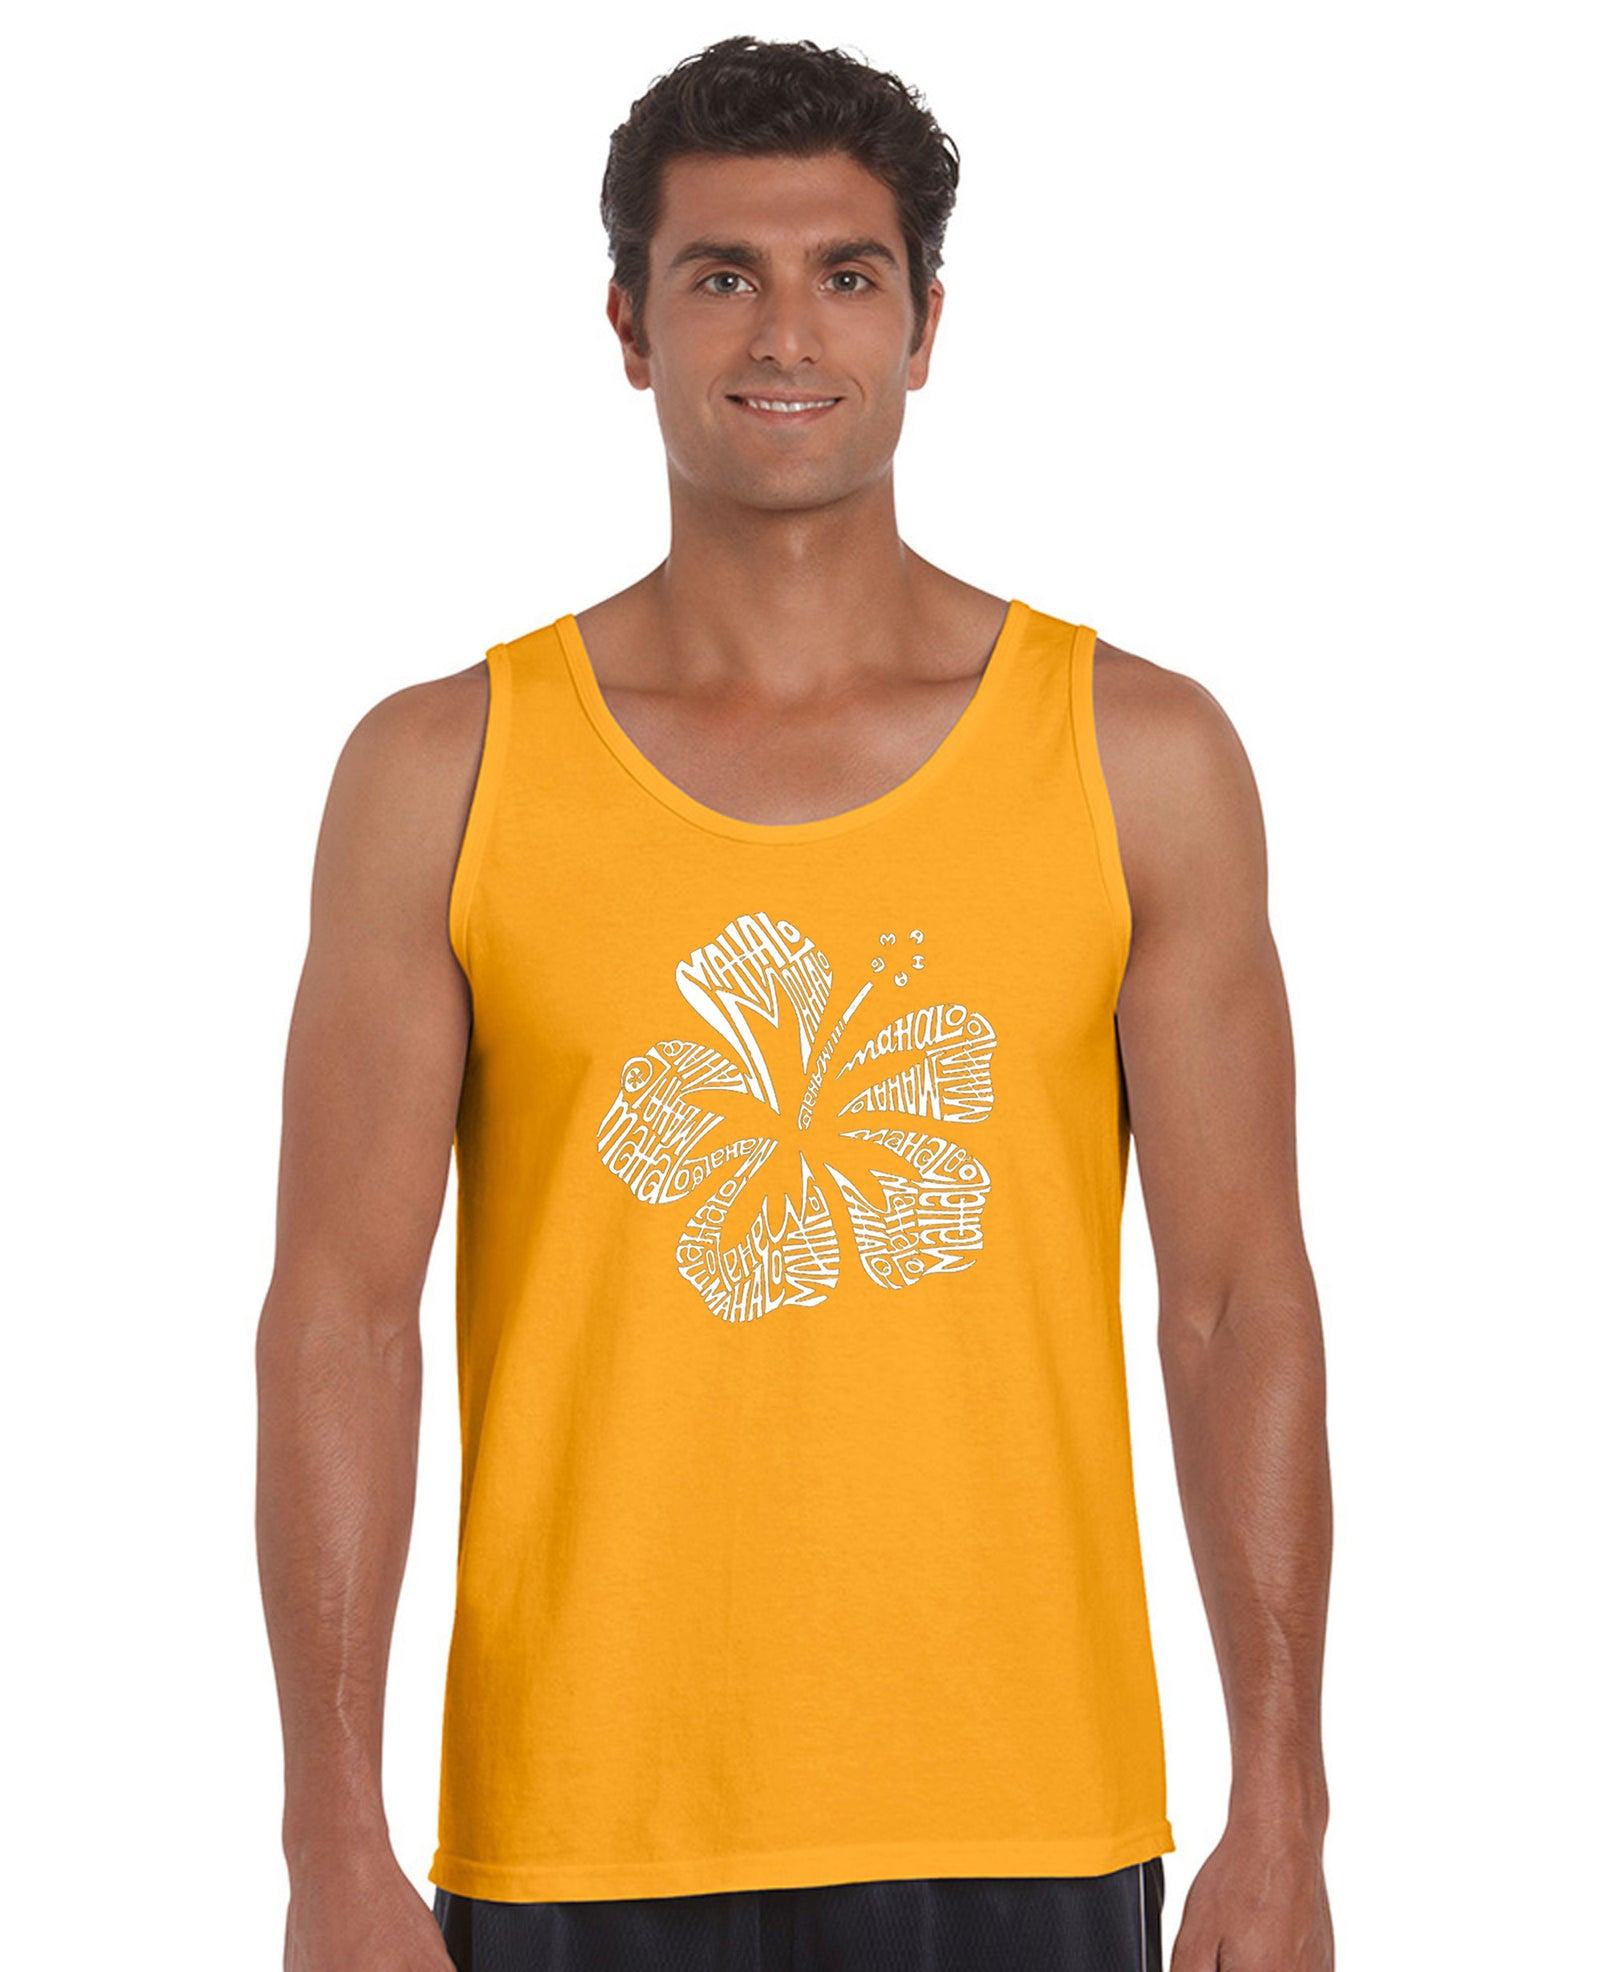 Mens Tank Top - Created using the word Mahalo